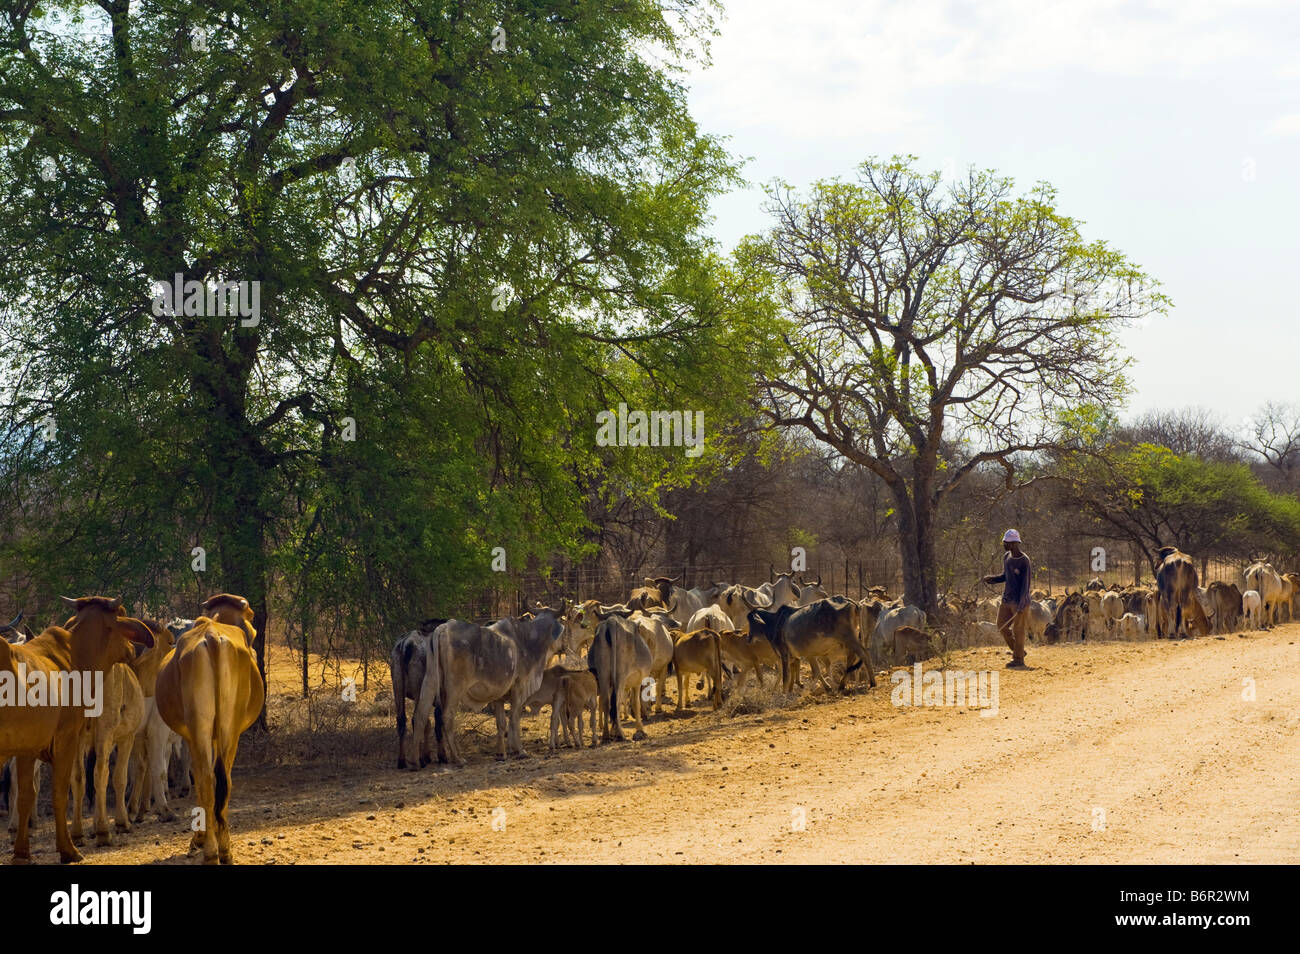 cattle brahman cow bull flock herd group cattle breeding farming in South-Africa south africa brahma  afrika flock - Stock Image